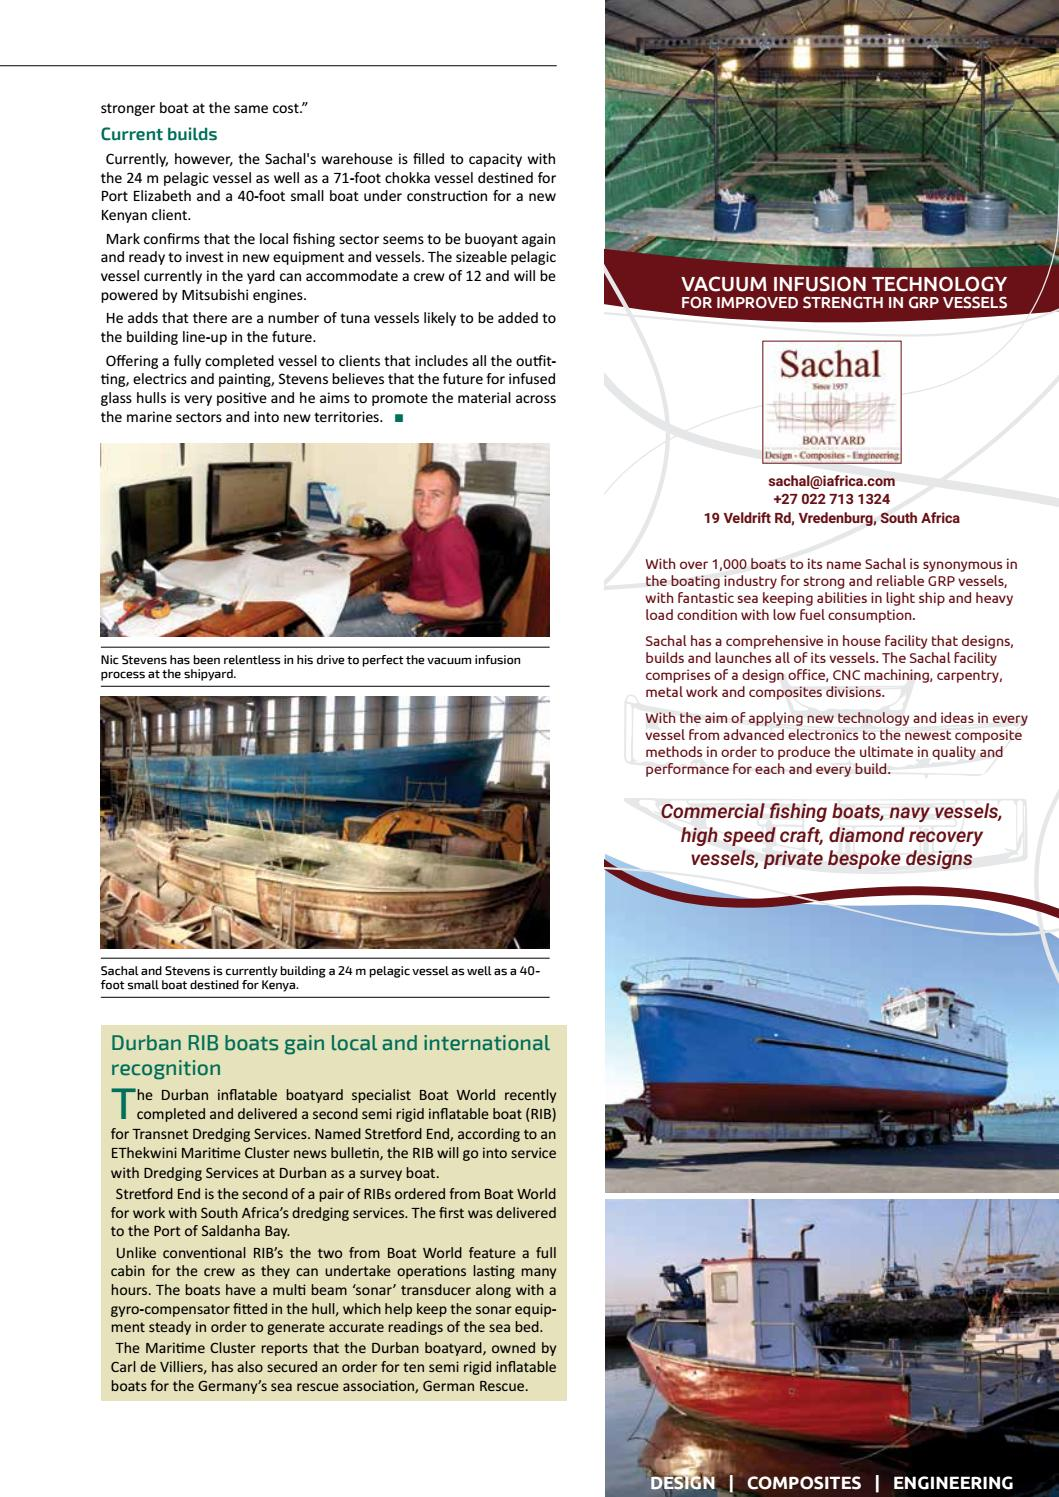 Maritime Review Africa JulyAugust 2016 by More Maximum Media